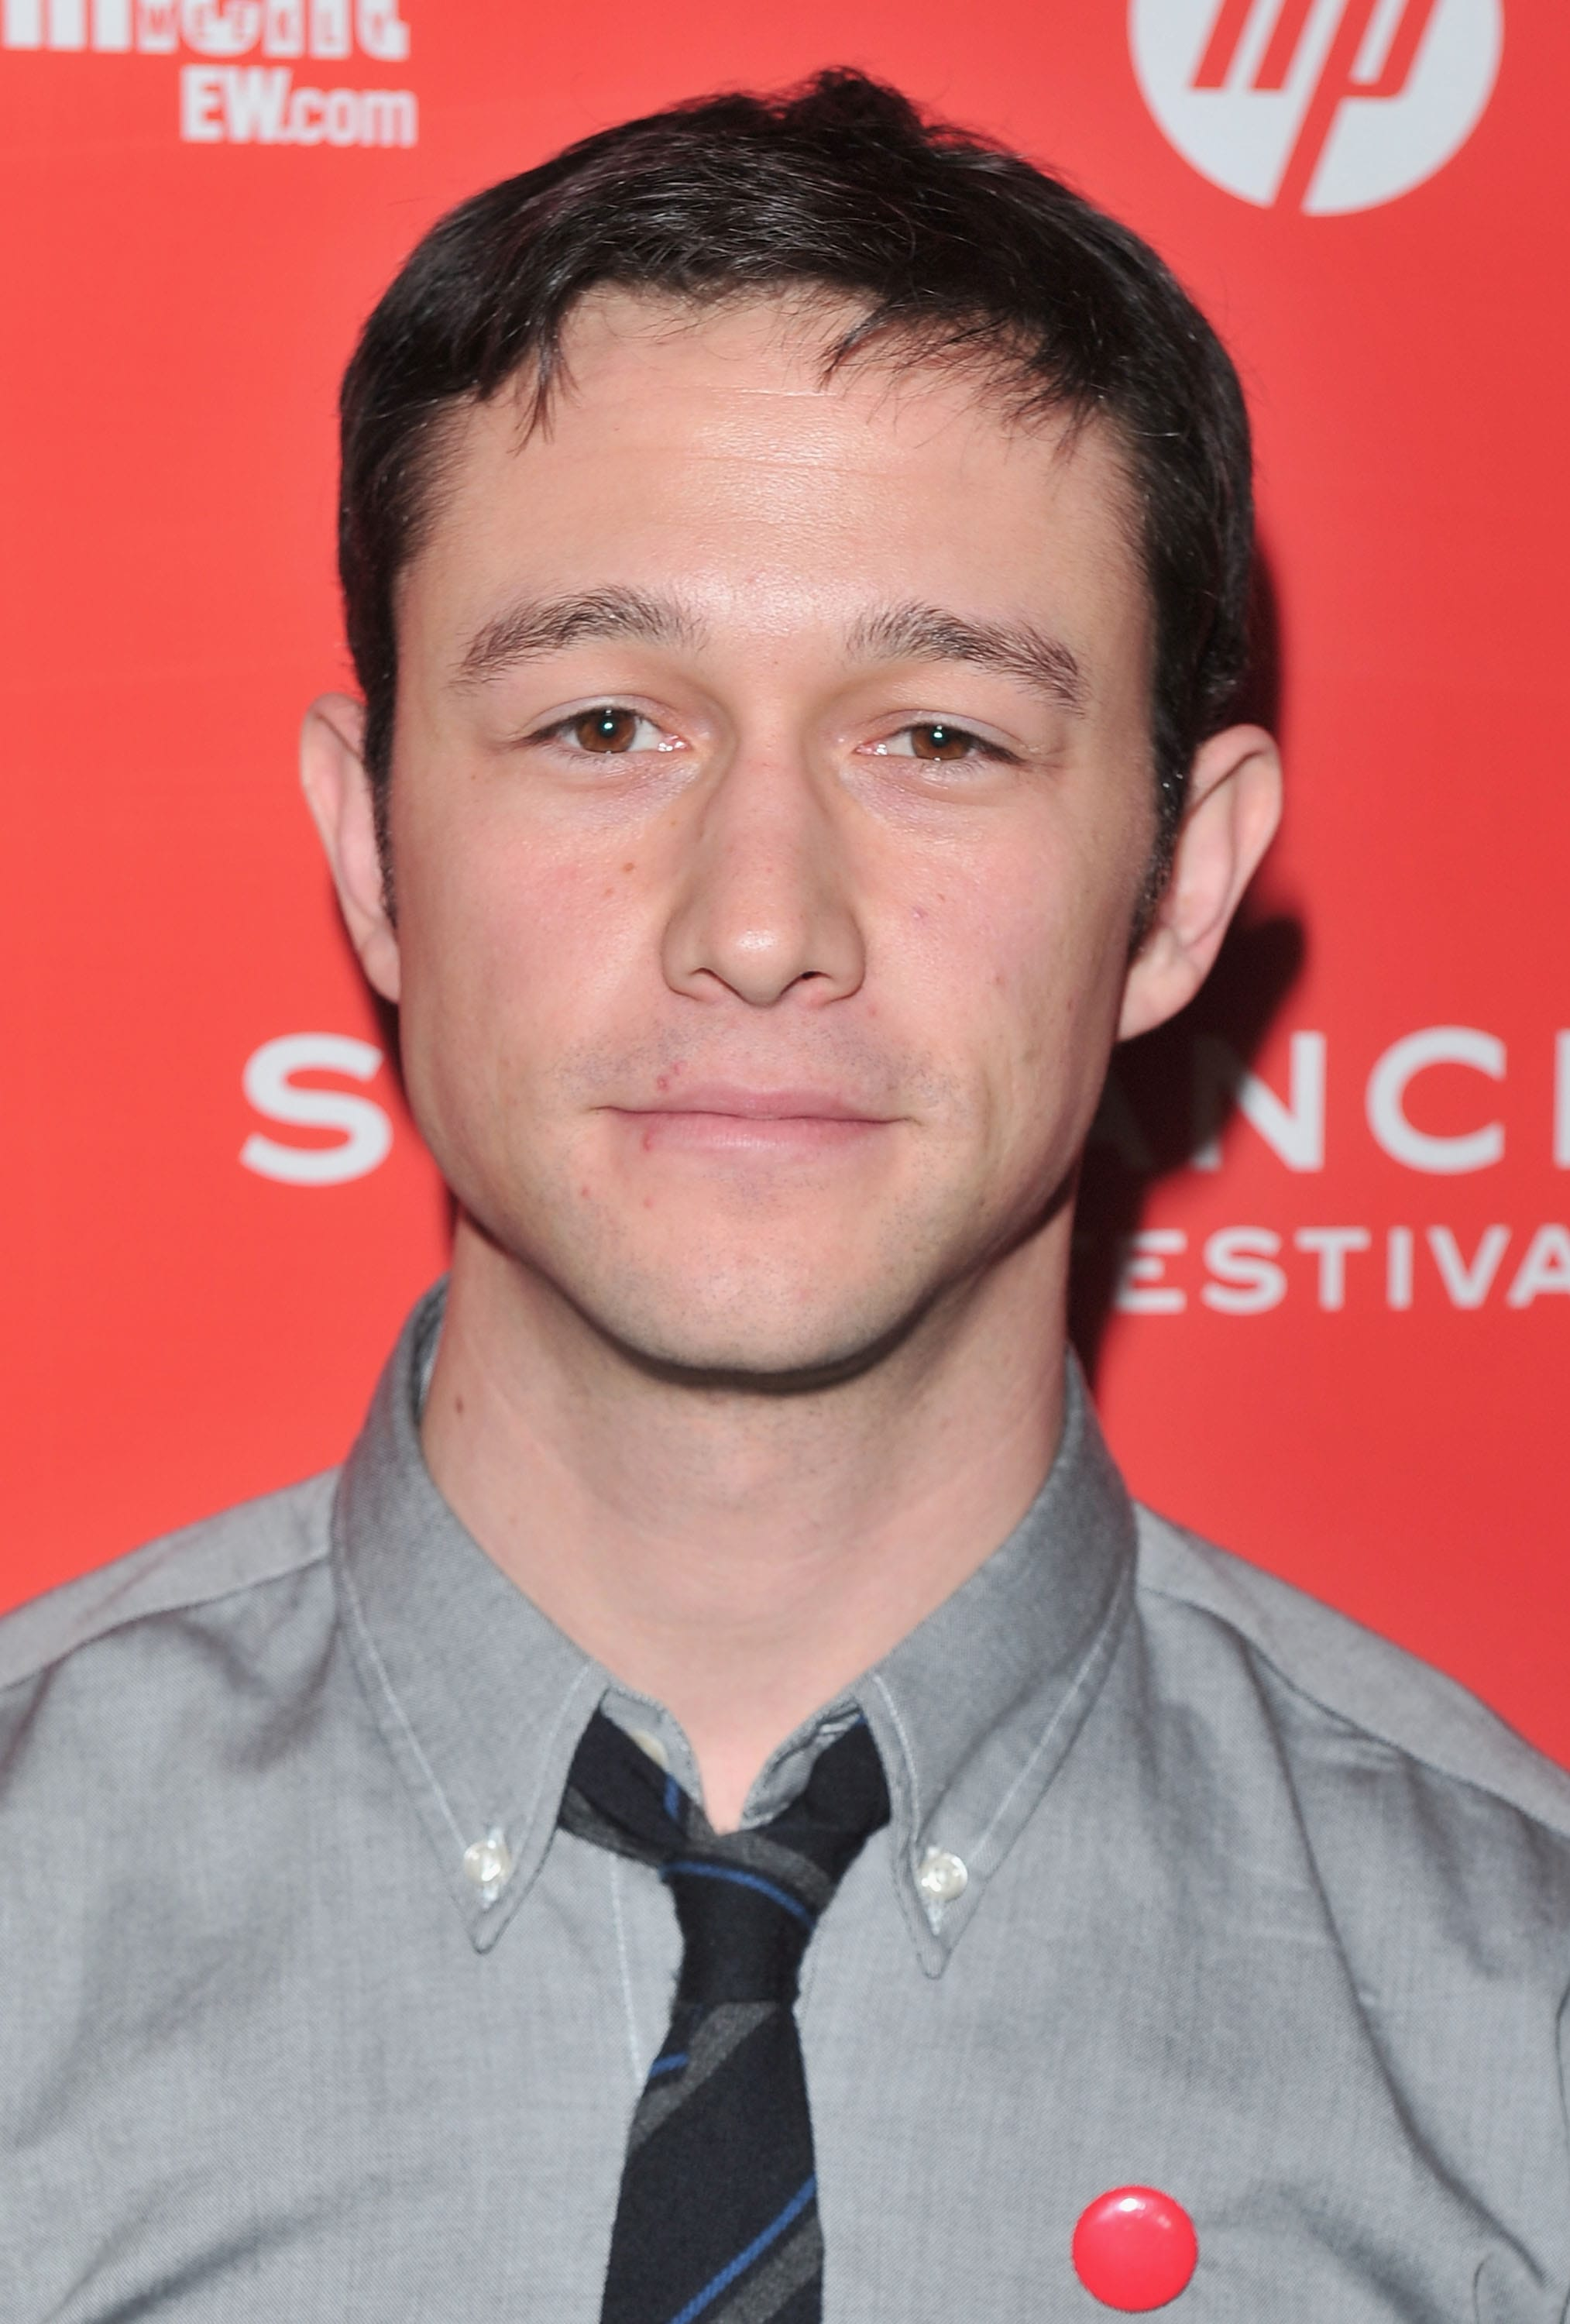 Joseph Gordon-Levitt For mobile